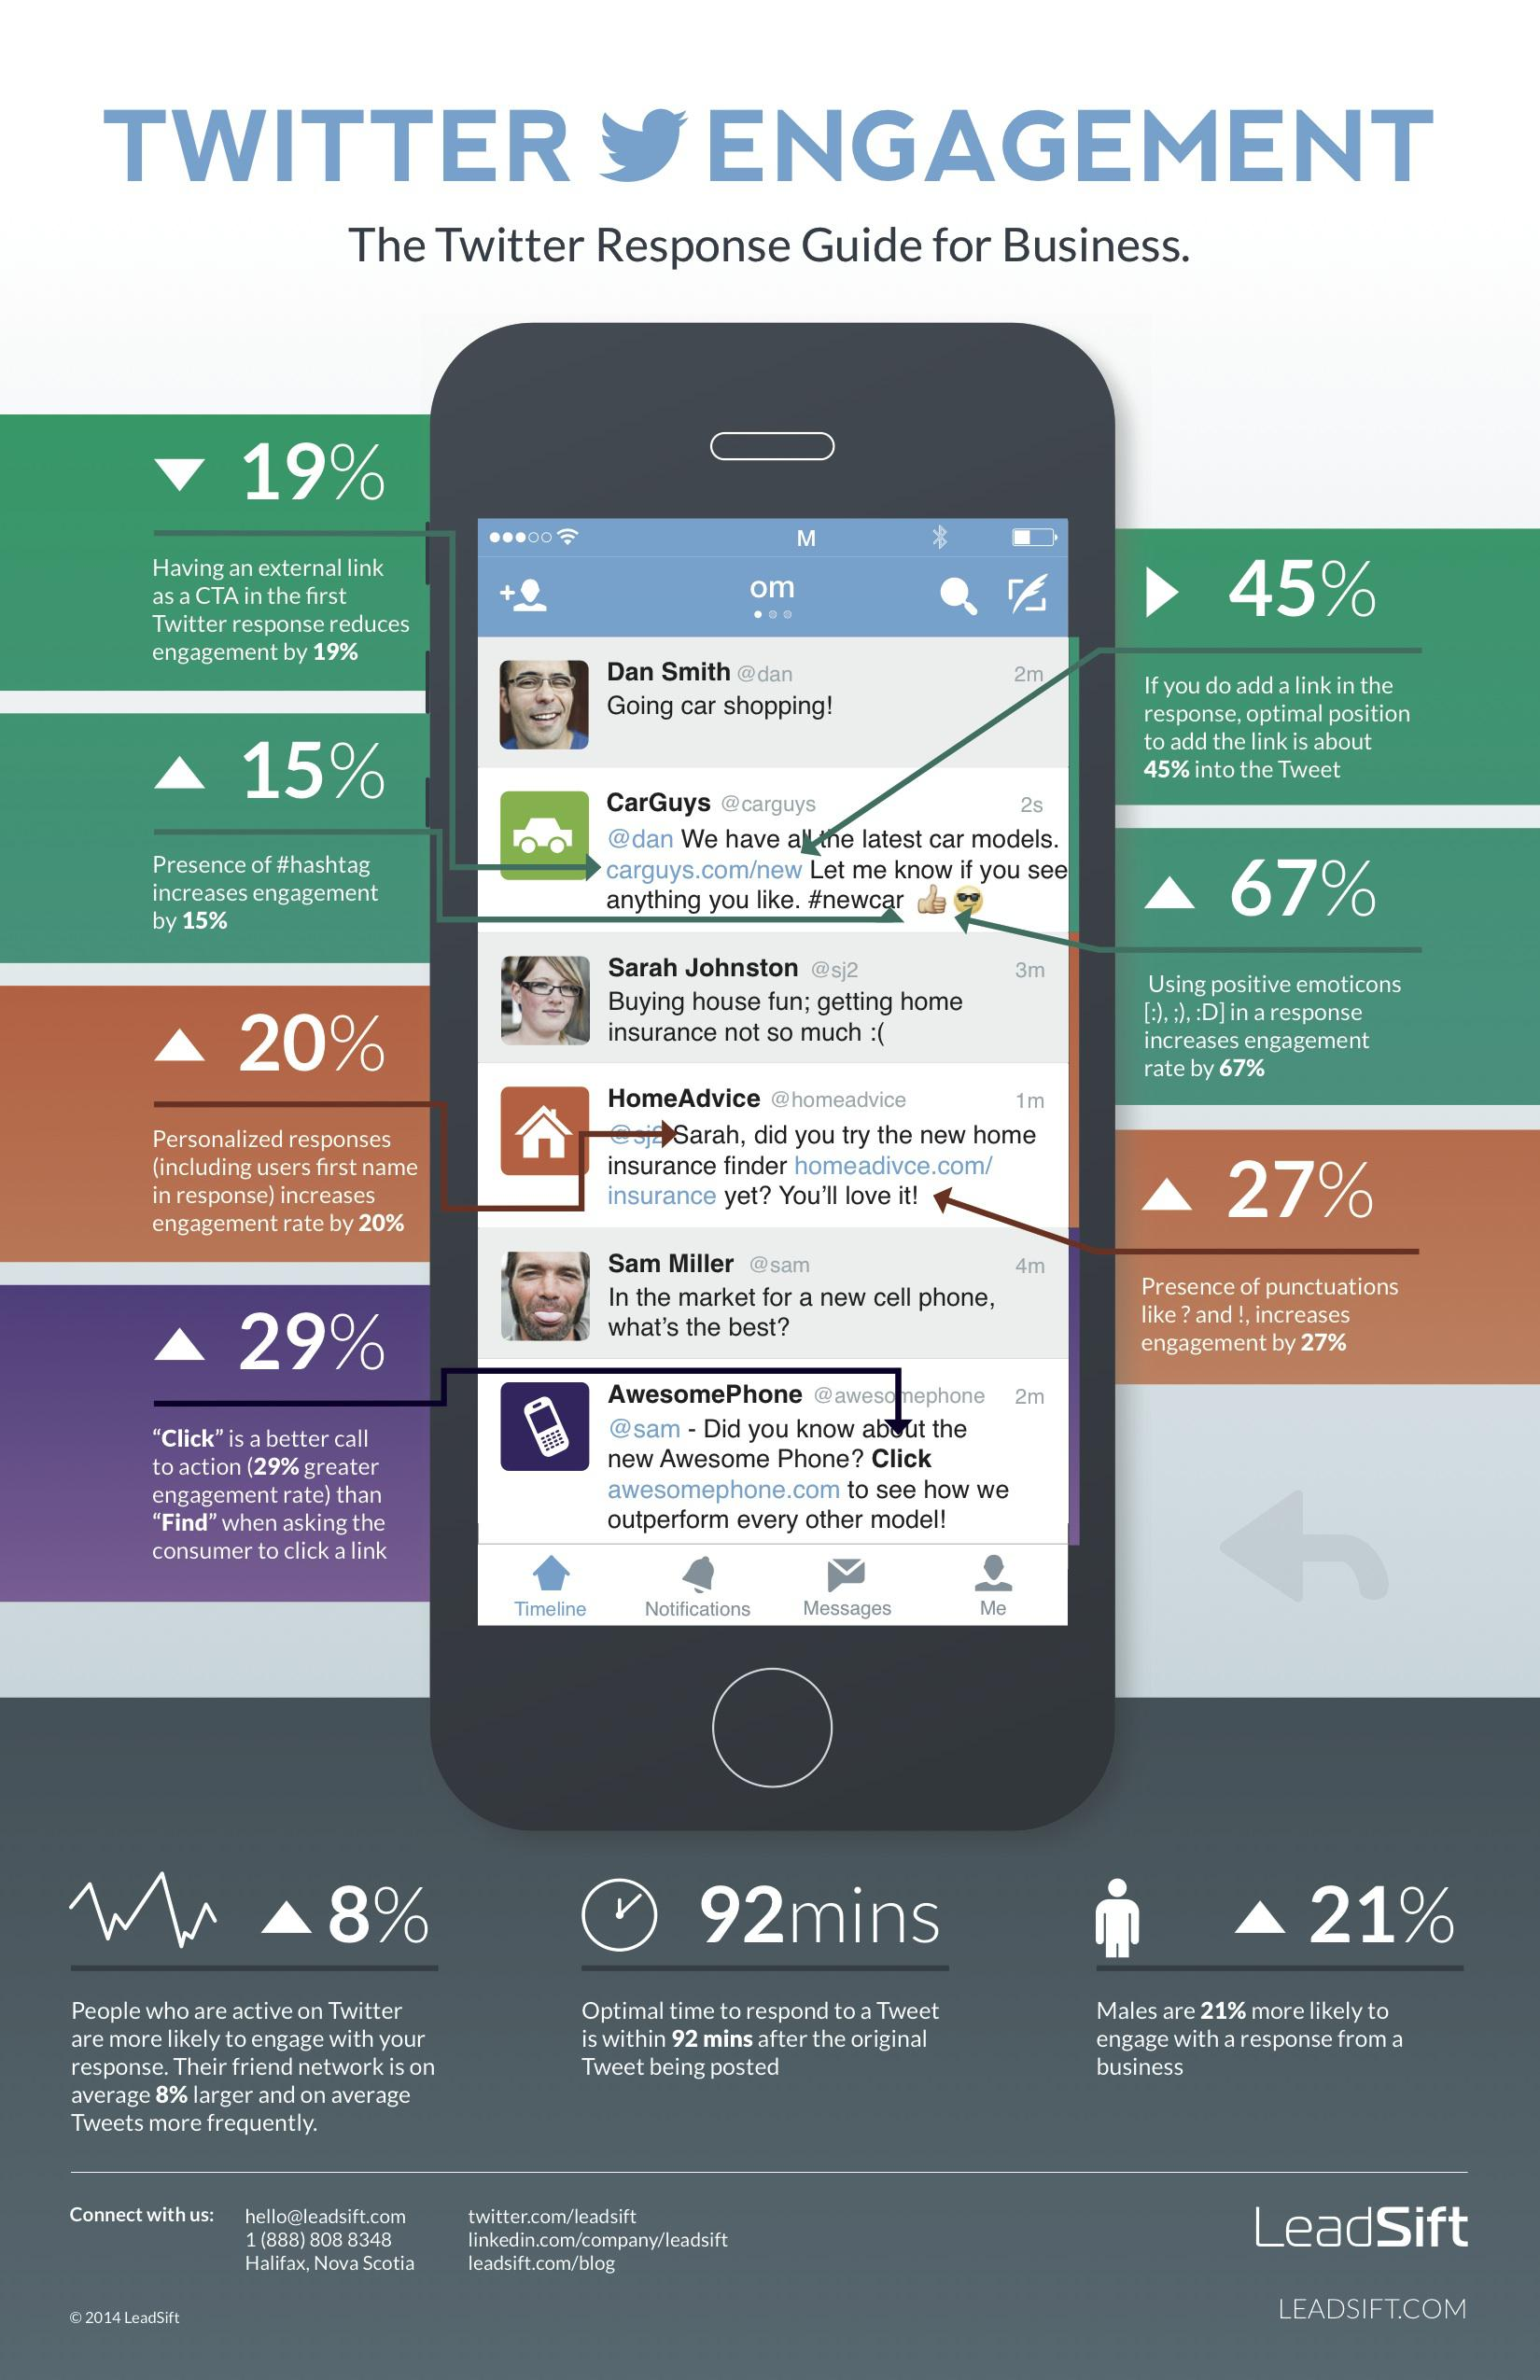 LeadSift-Infographic-TwitterEngagement